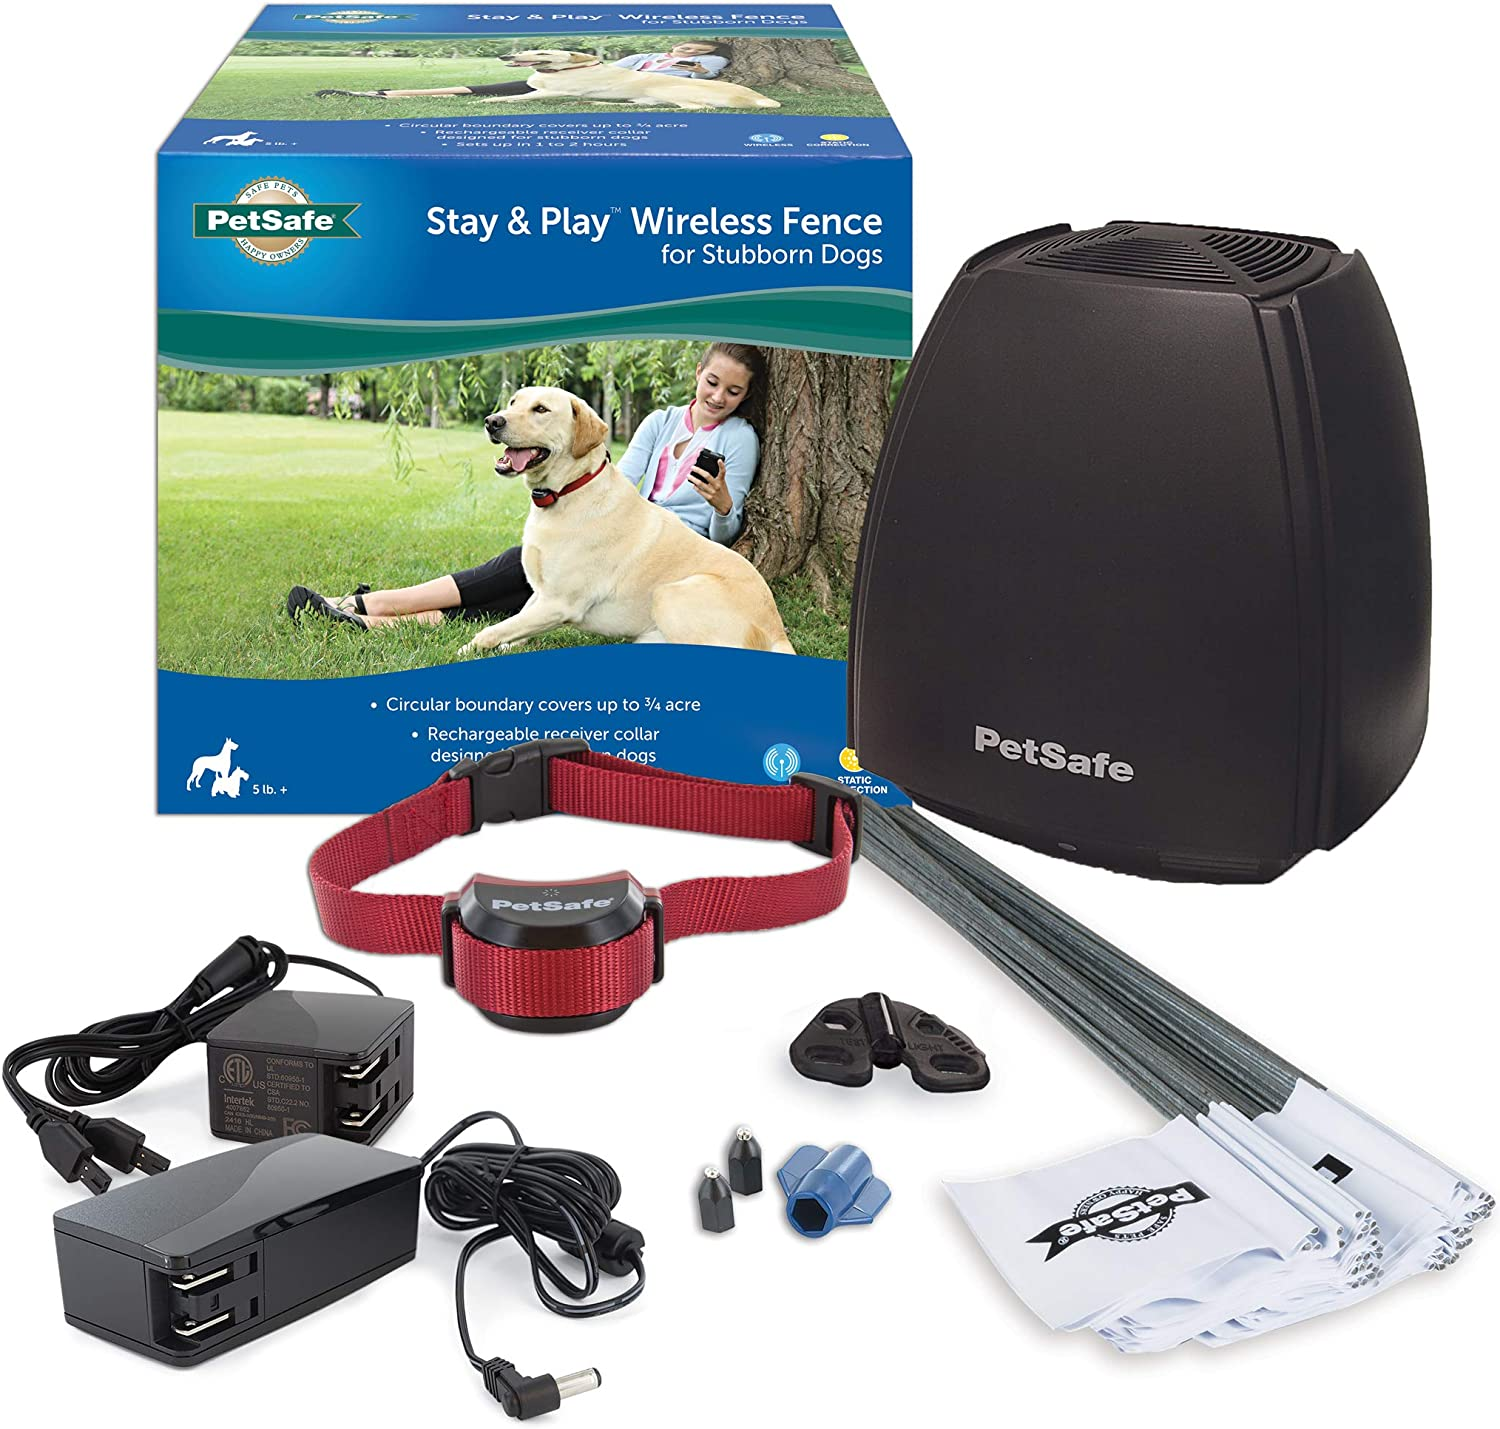 PetSafe Stay Play Wireless Fence for Stubborn Dogs from the Parent Company of INVISIBLE FENCE Brand Above Ground Electric Pet Fence